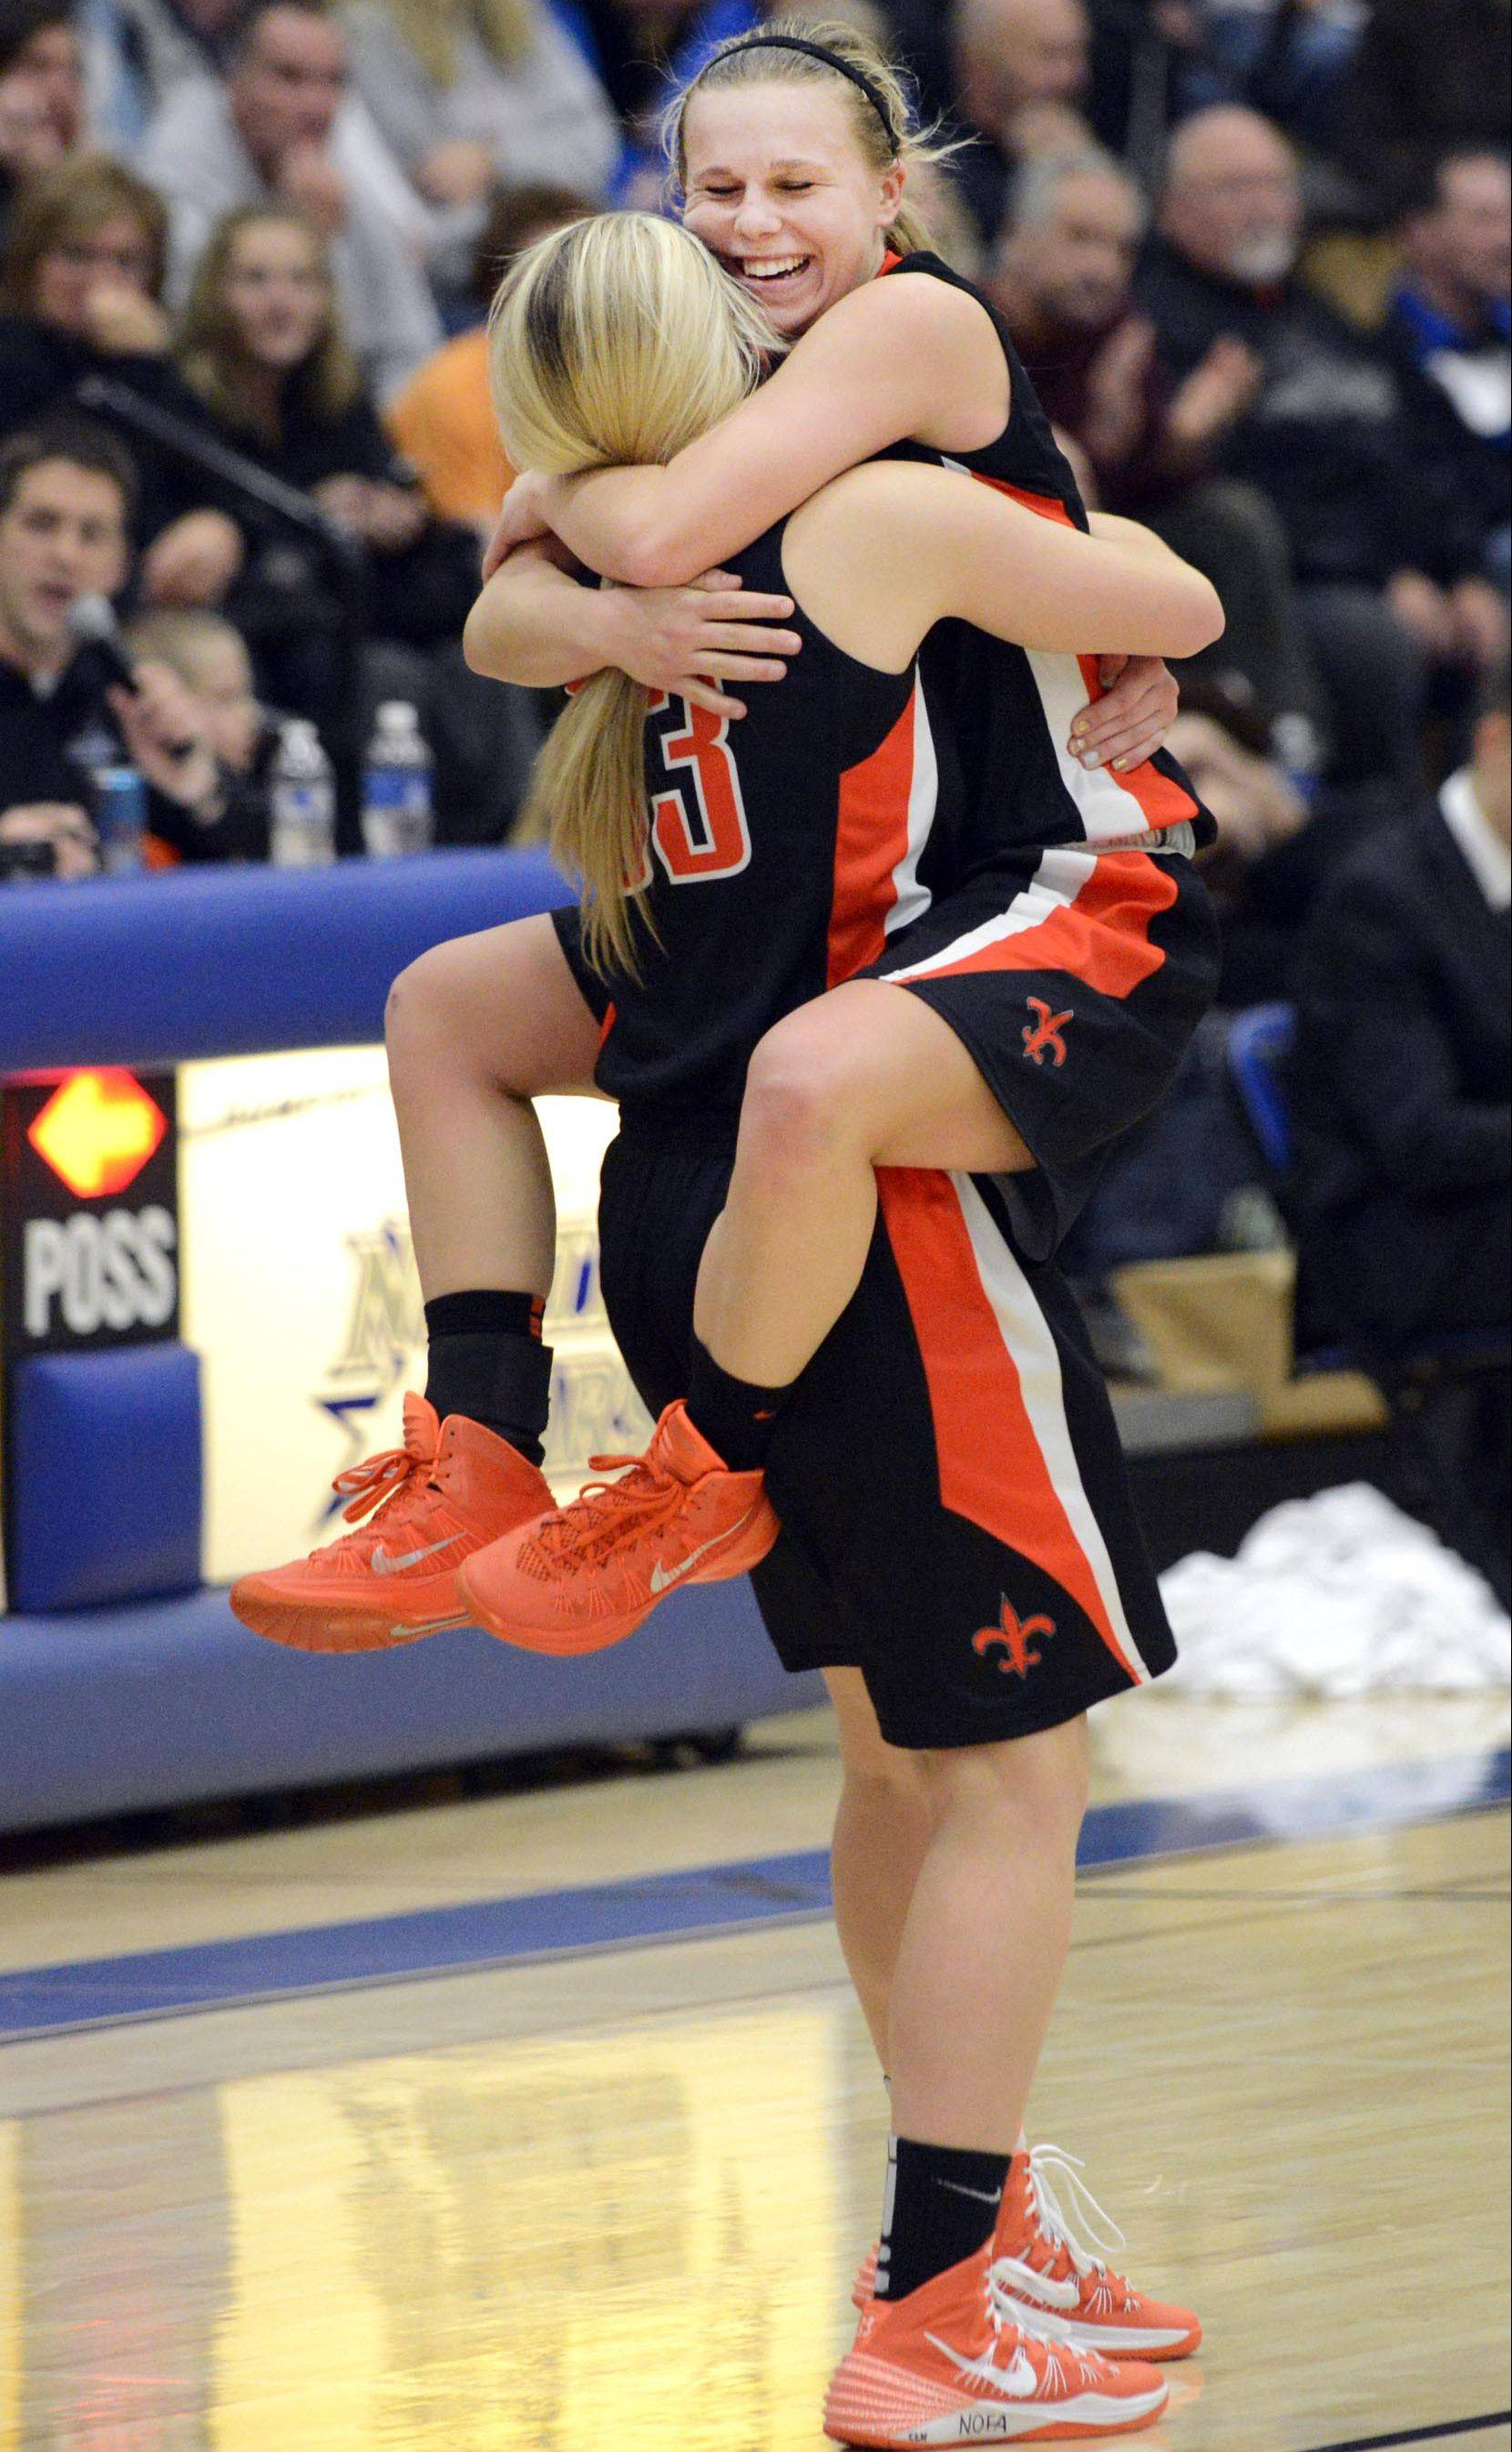 St. Charles East's Amanda Hilton jumps into the arms of teammate Hannah Nowling as time expires in their win Saturday.